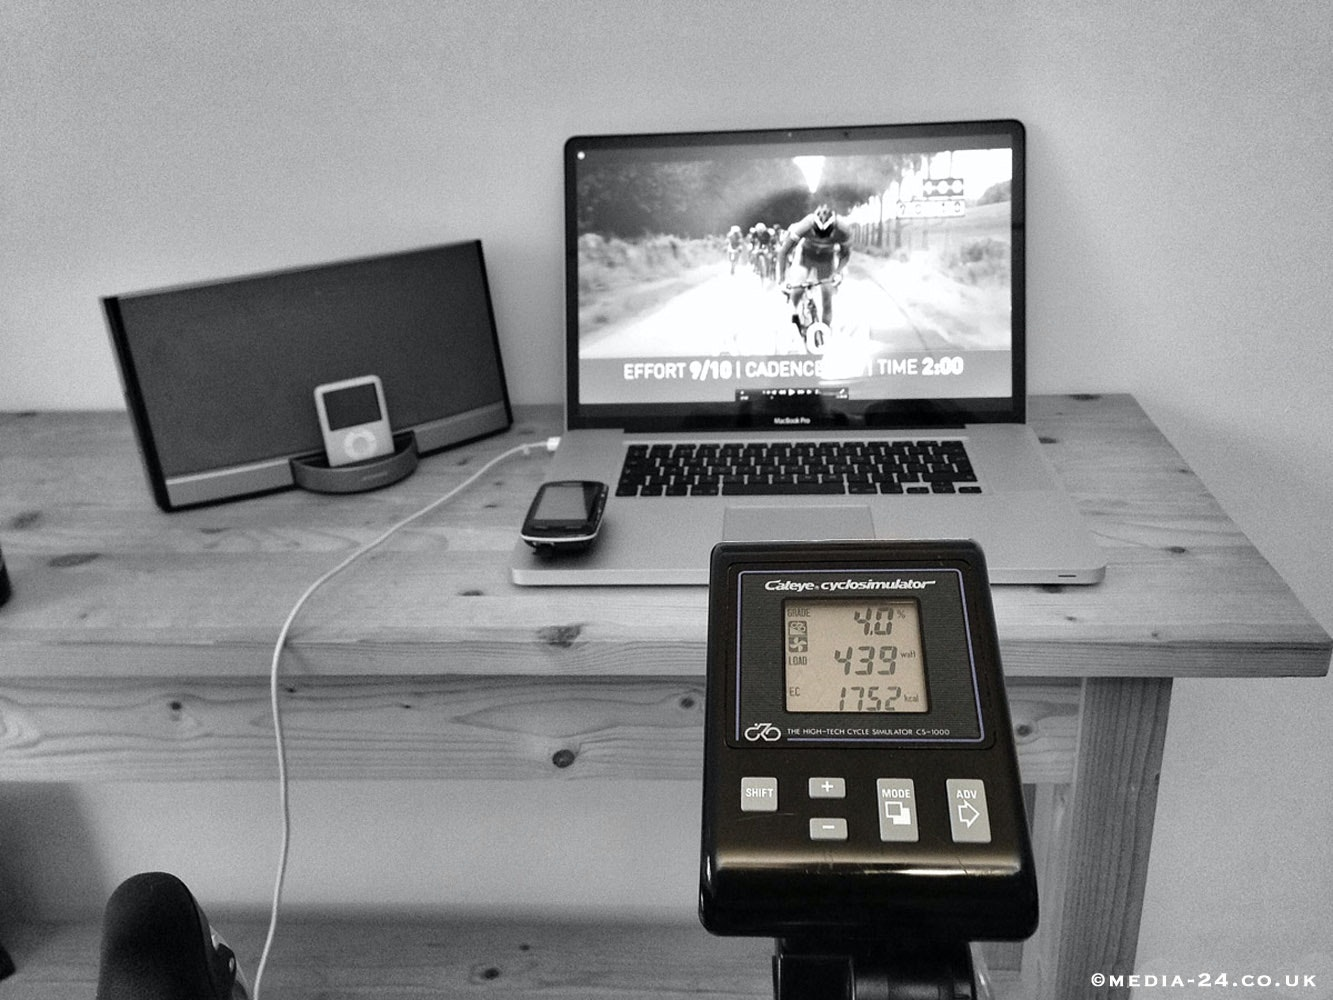 Virtual_Reality, sufferfest, video, trainer, pic: Mike Cotty/Media-24